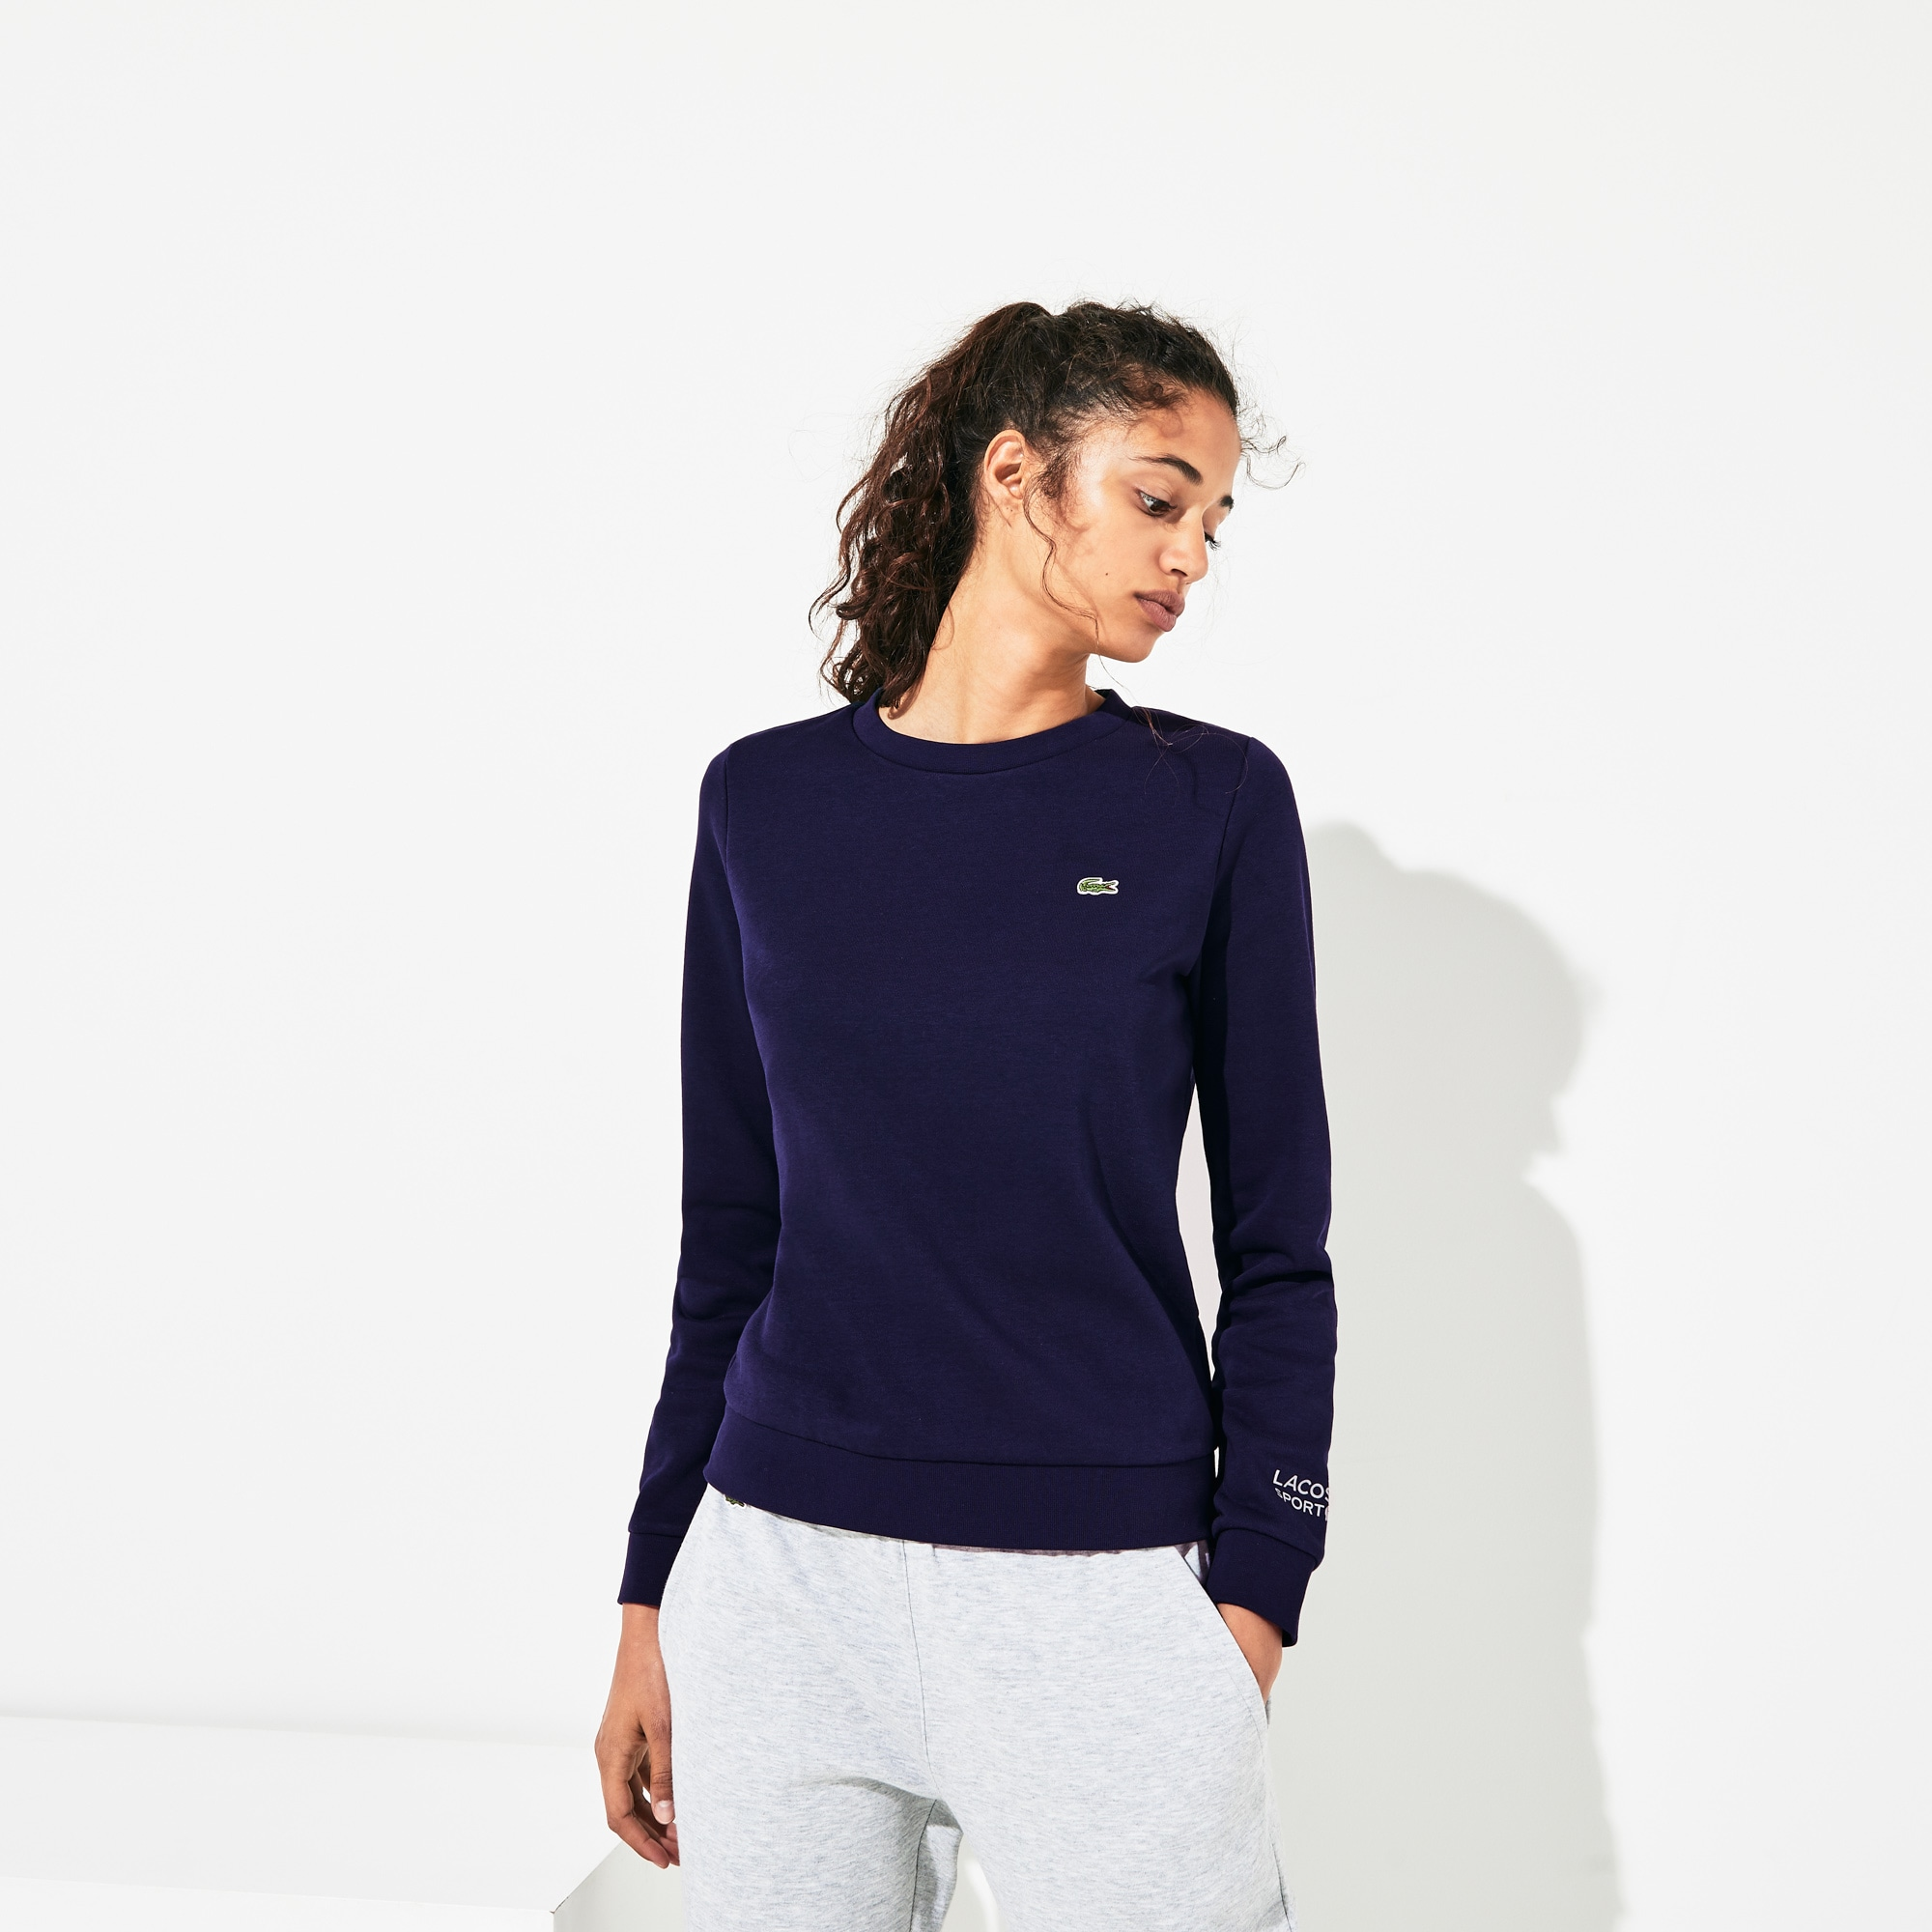 Women's SPORT Crew Neck Fleece Sweatshirt